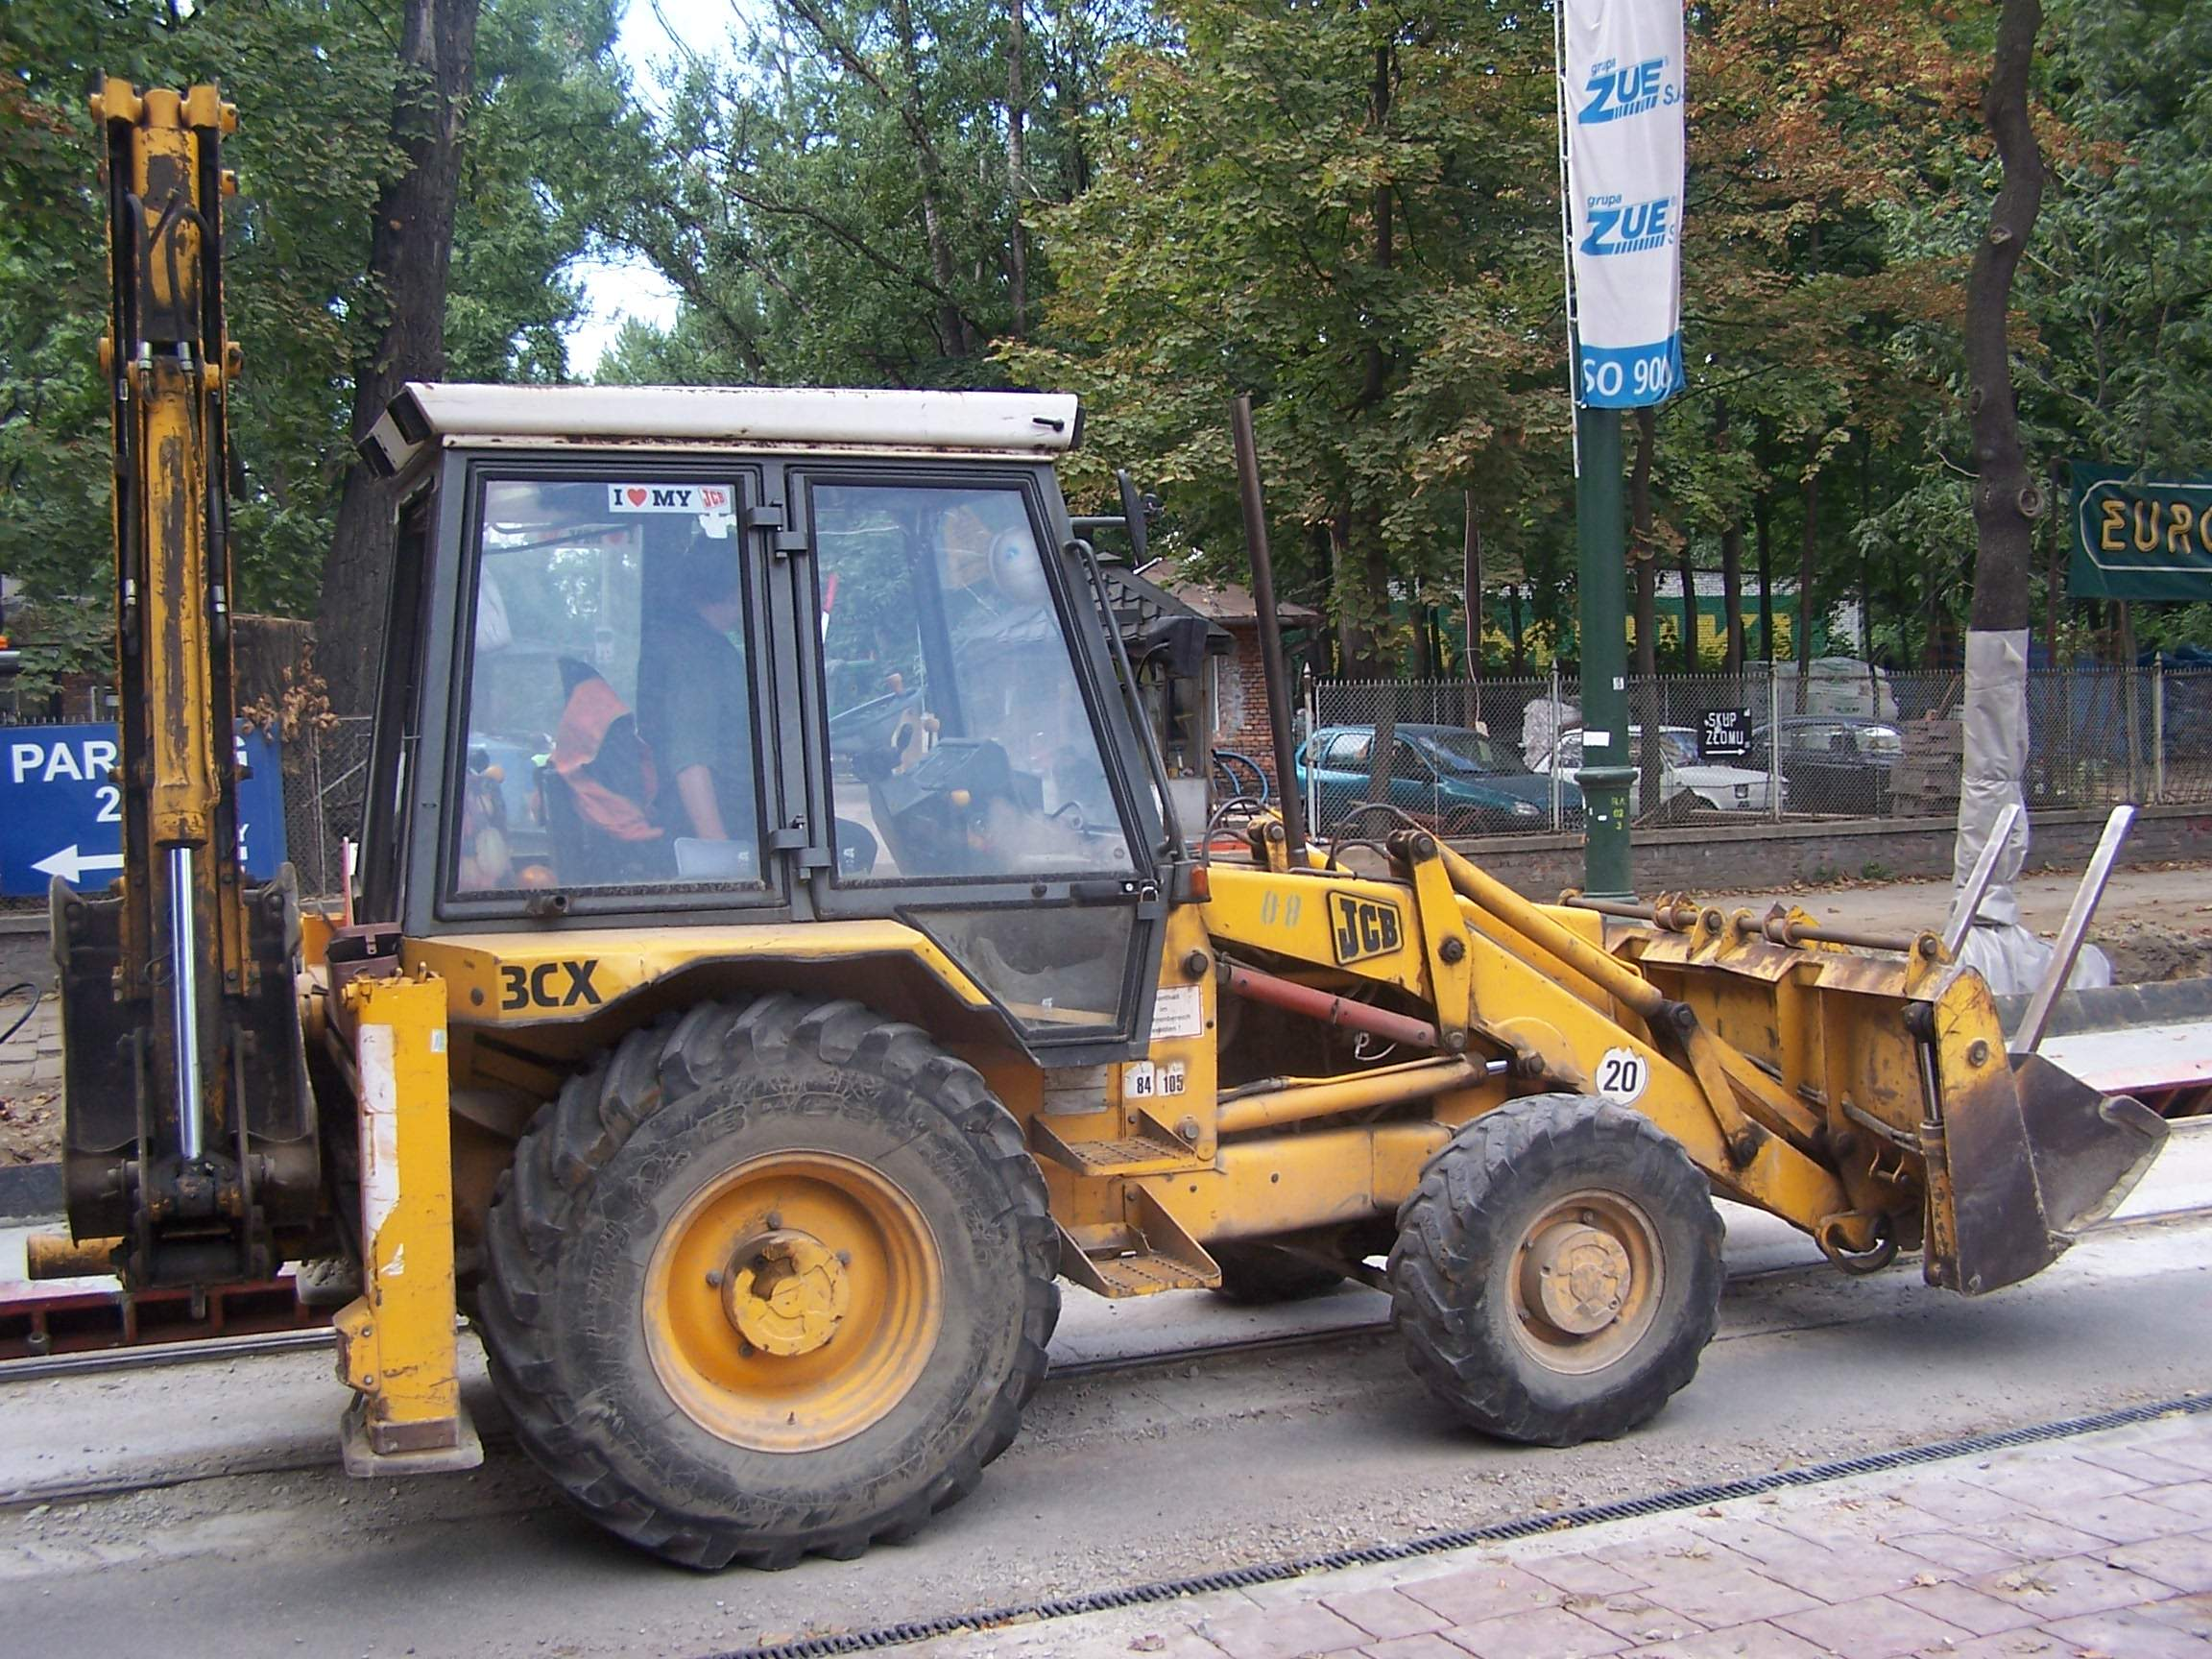 File:JCB machine 01 JPG - Wikimedia Commons